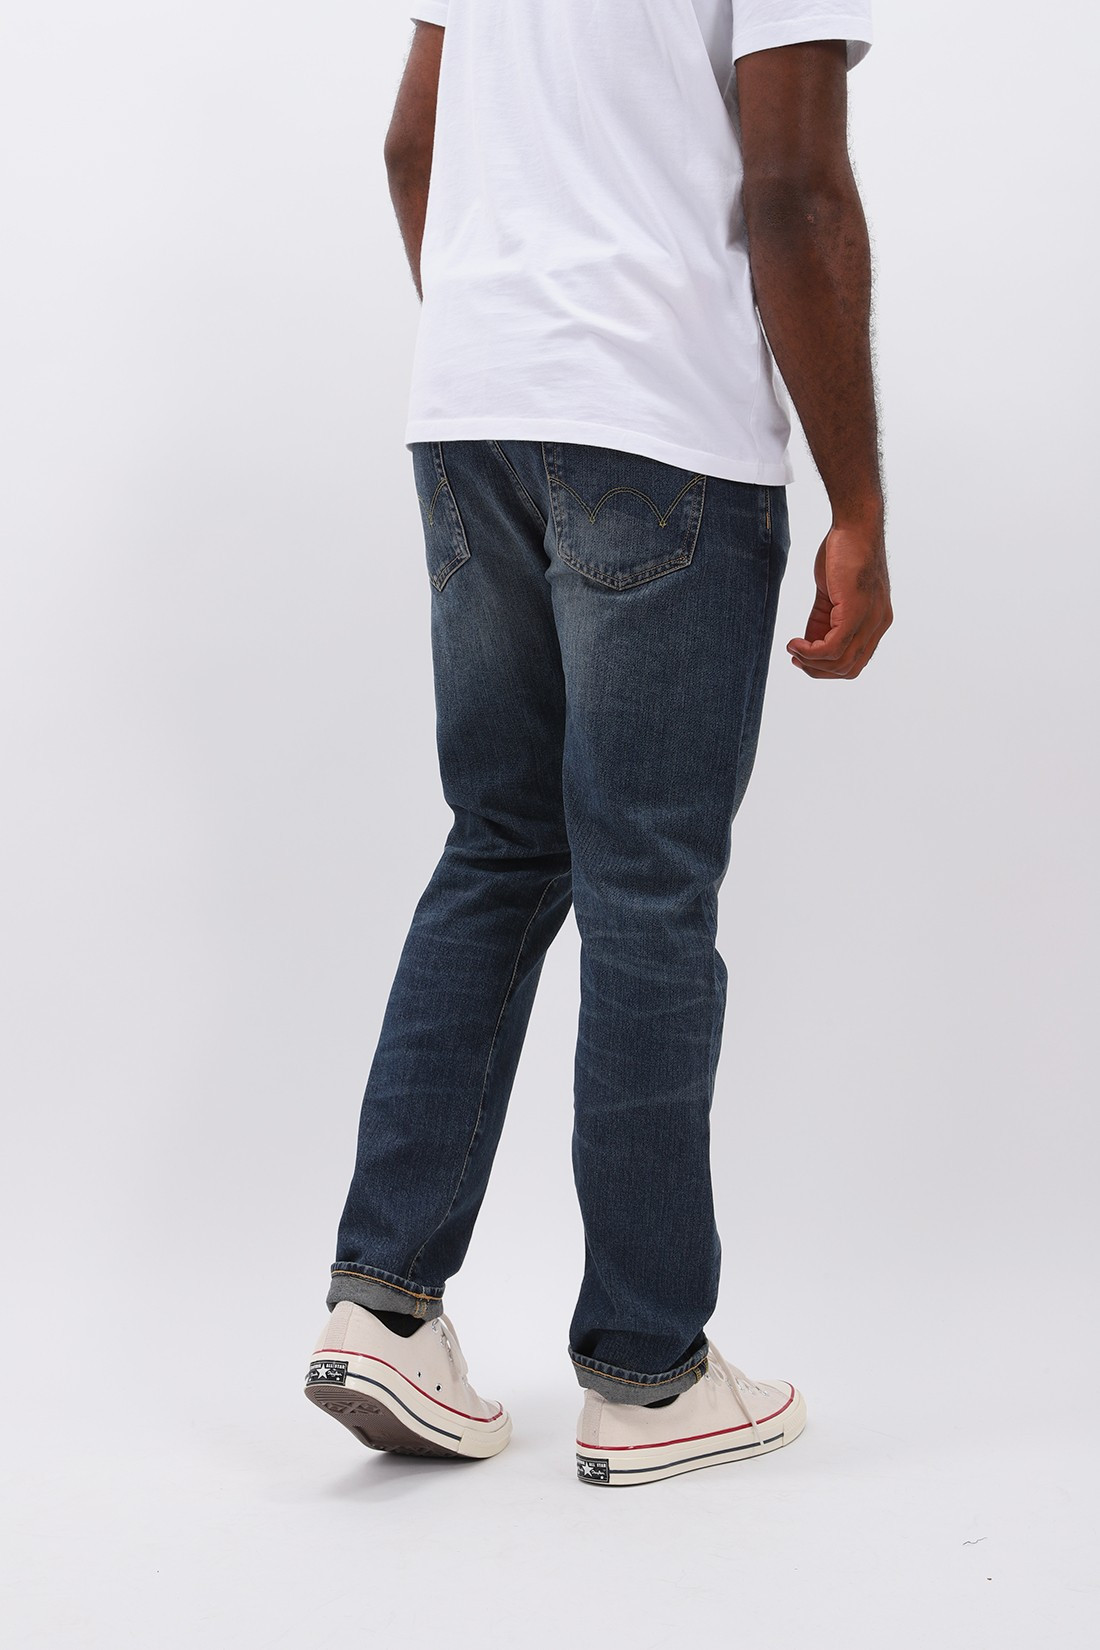 EDWIN / Ed-80 yoshiko left hand denim Nyoko wash